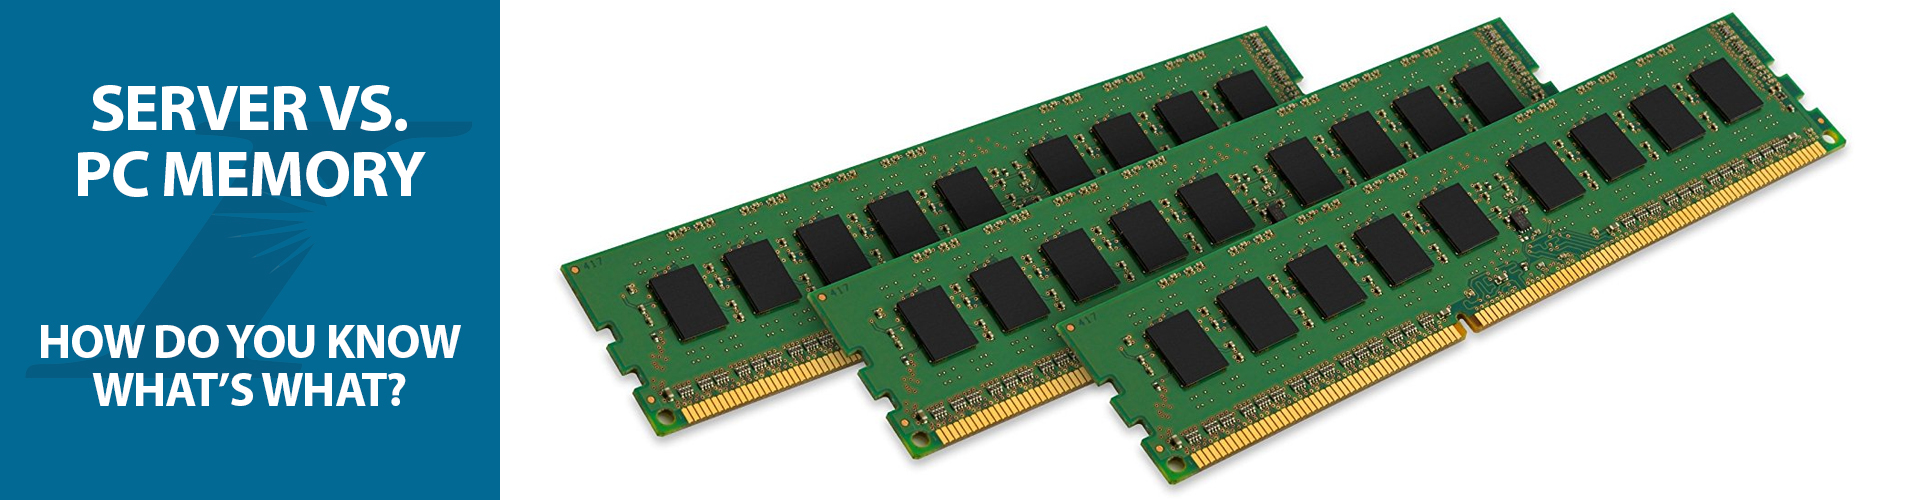 Server vs PC Memory: How Do You Know What's What?